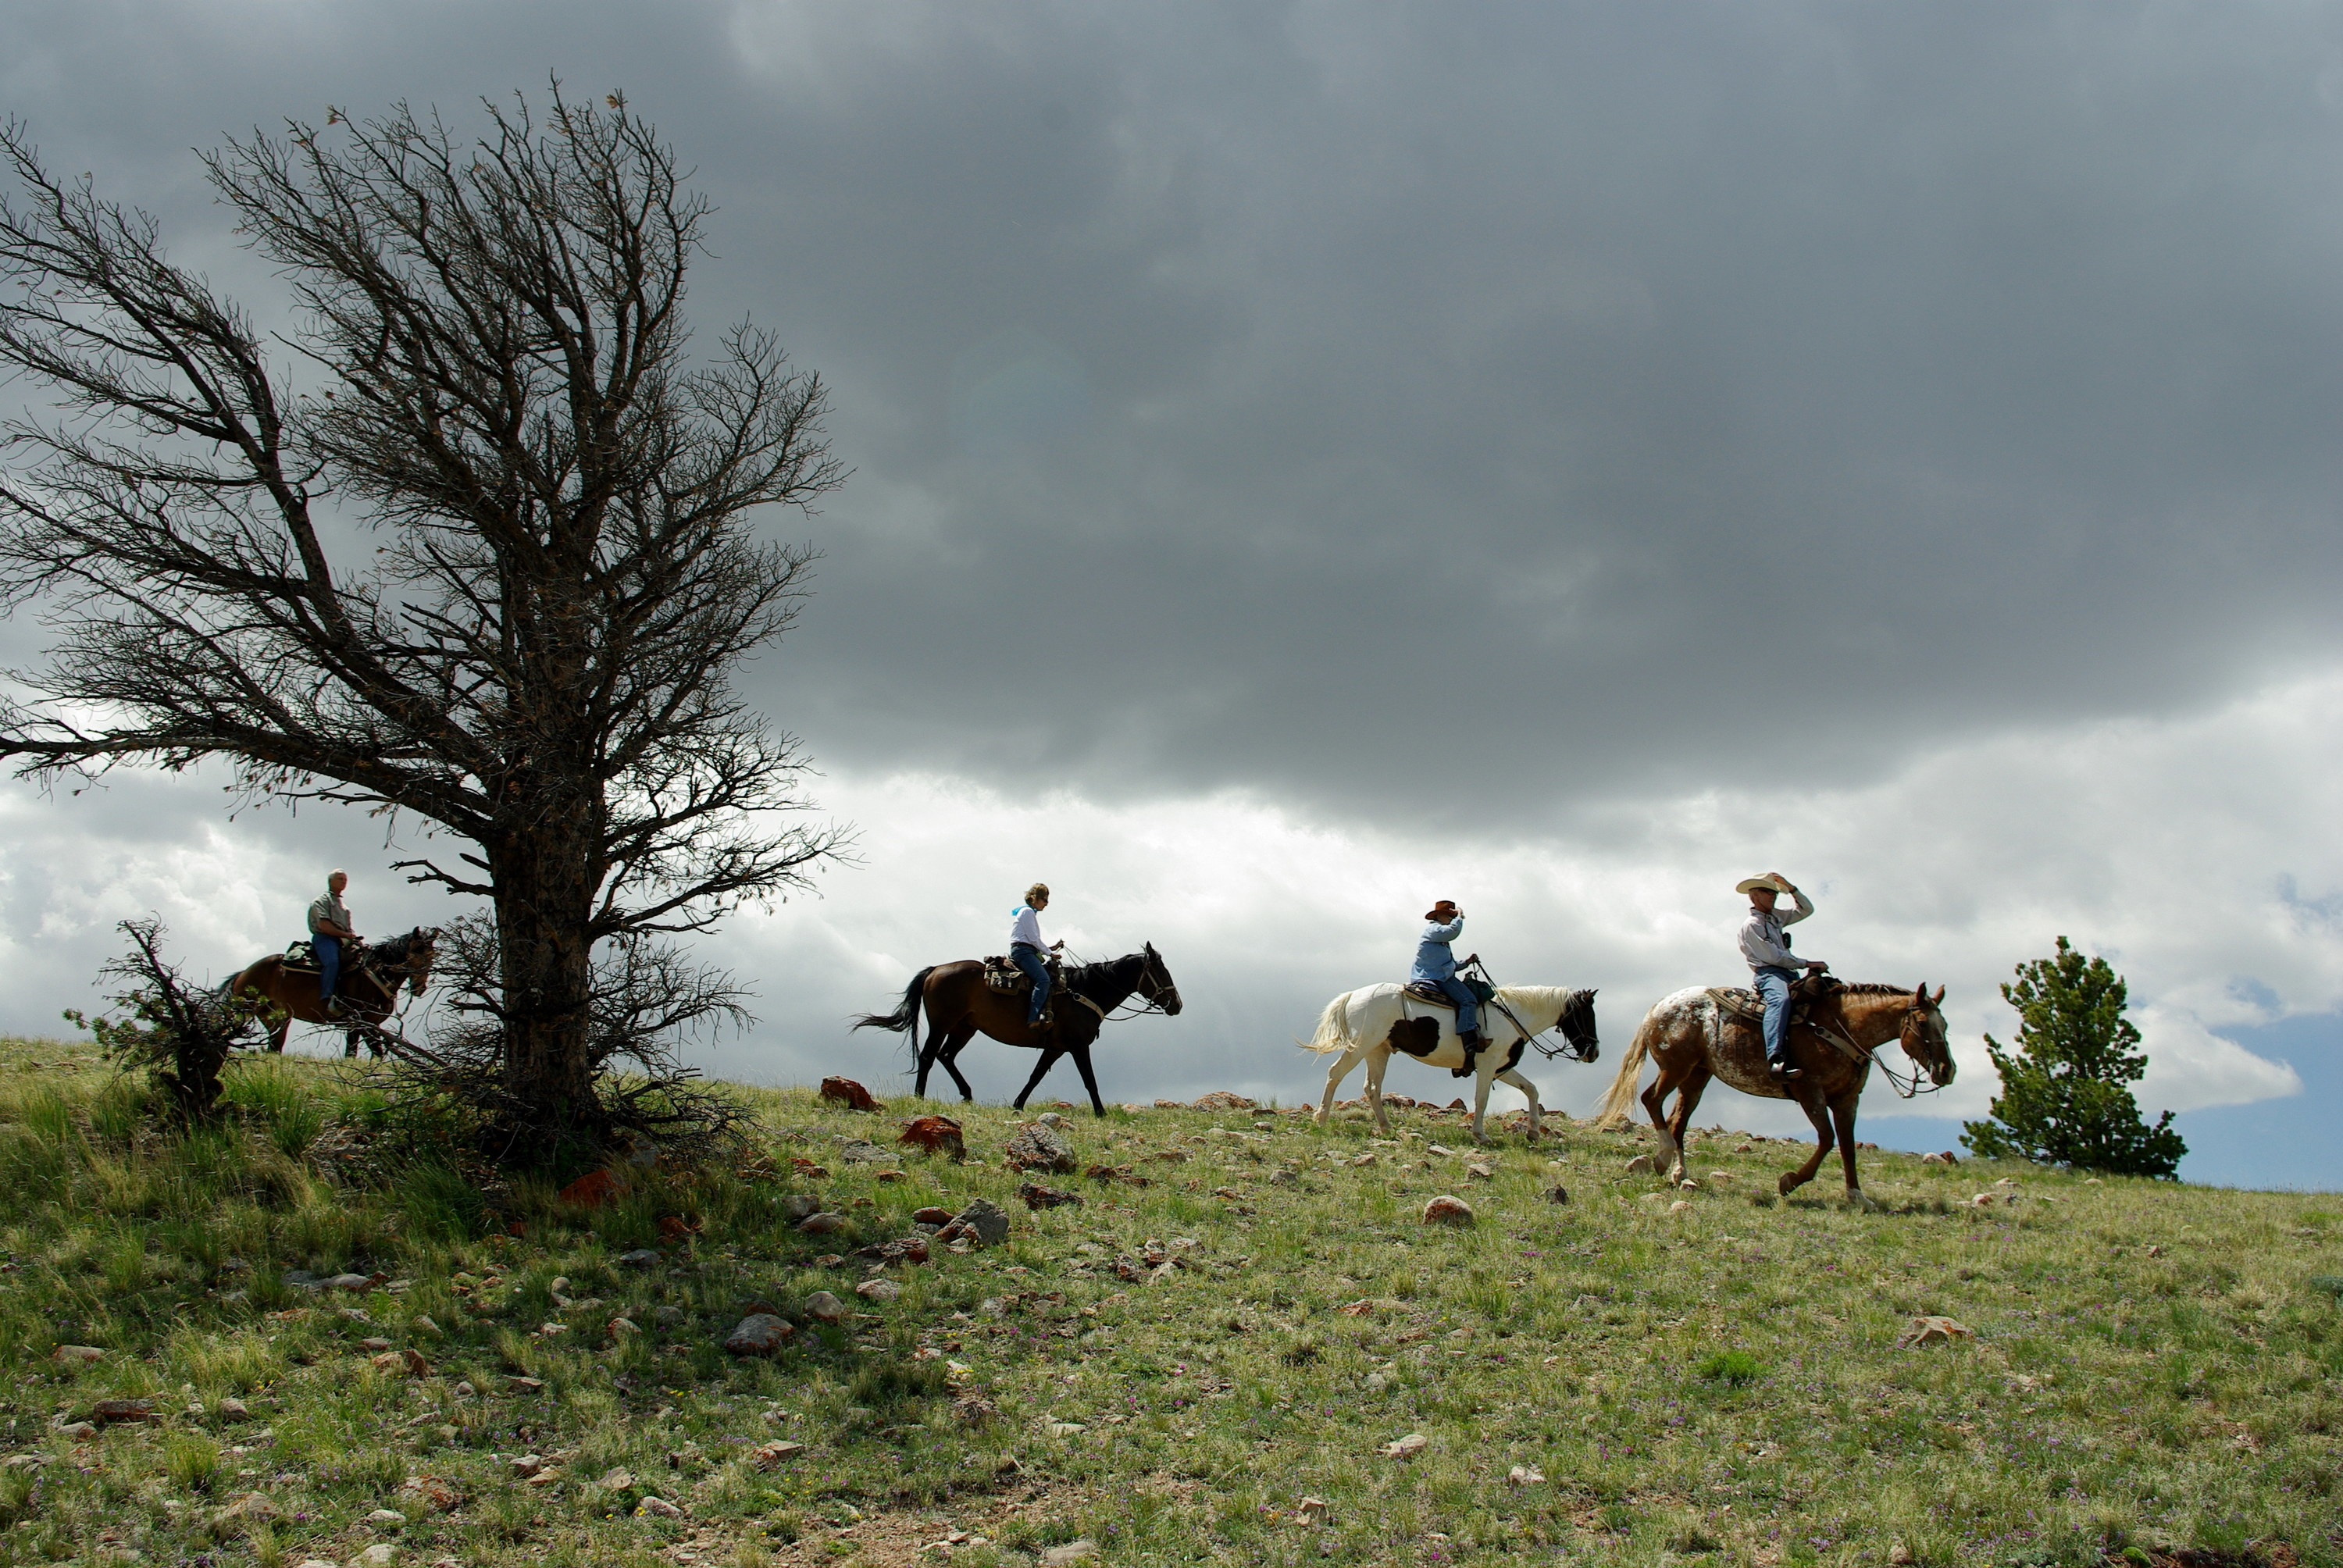 Four people on horseback on a ridge under a cloudy sky, with a dead tree to their right